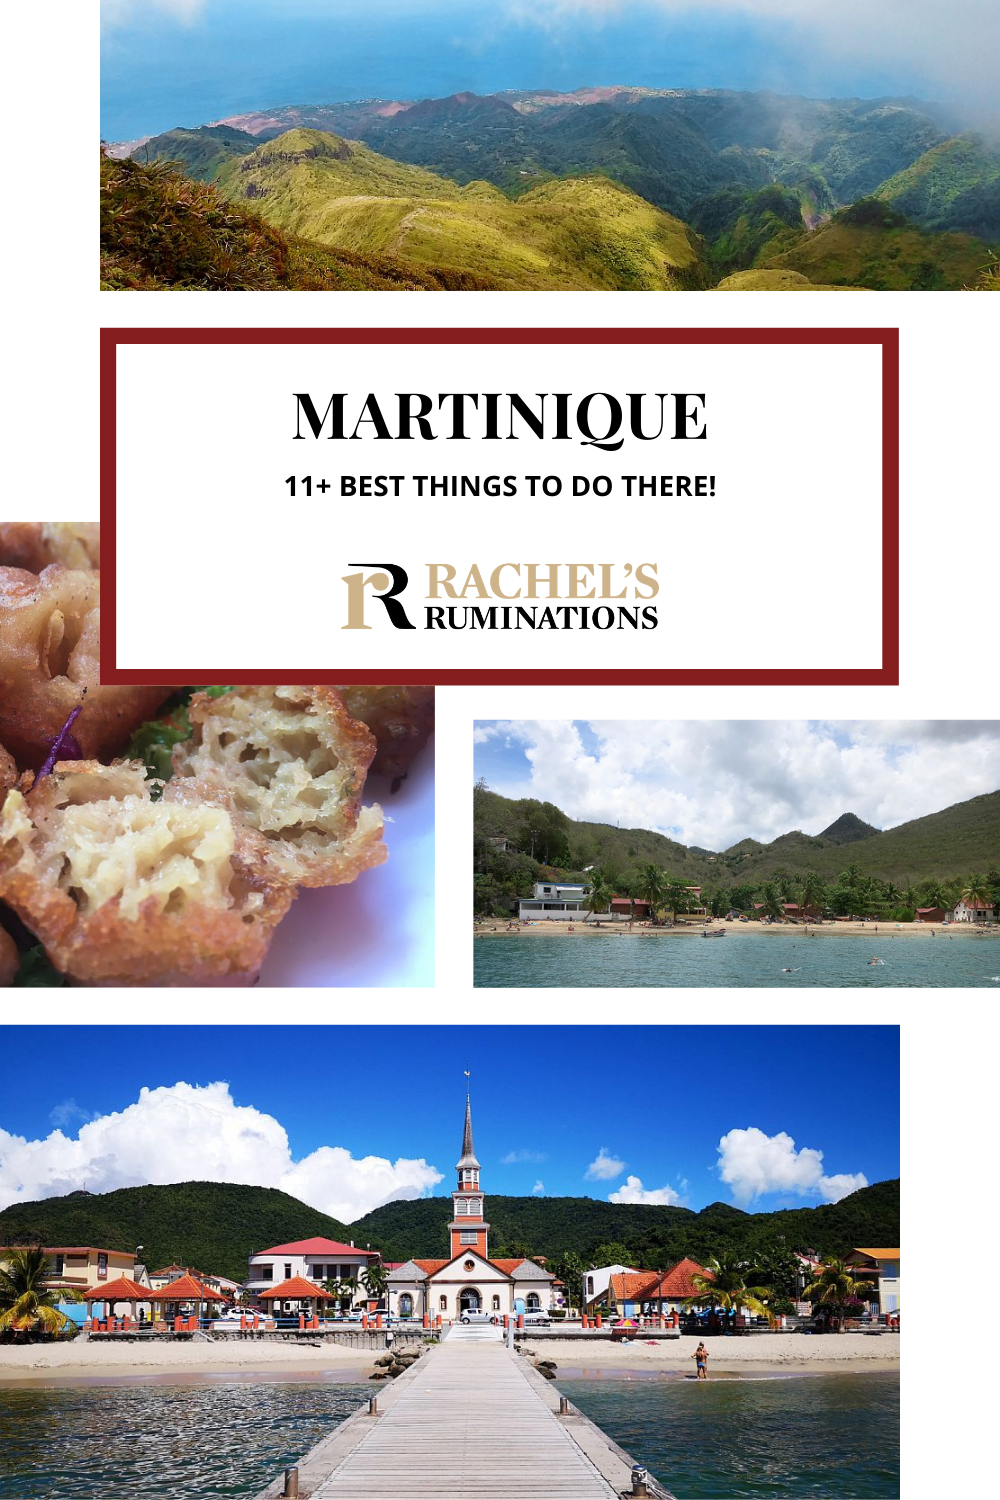 Martinique has it all - pristine beaches, secluded bays, scenic hikes, and panoramic views. Here are the 11 best things to do in Martinique! Read about all the best sights to see, hikes and activities on this beautiful Caribbean island! via @rachelsruminations